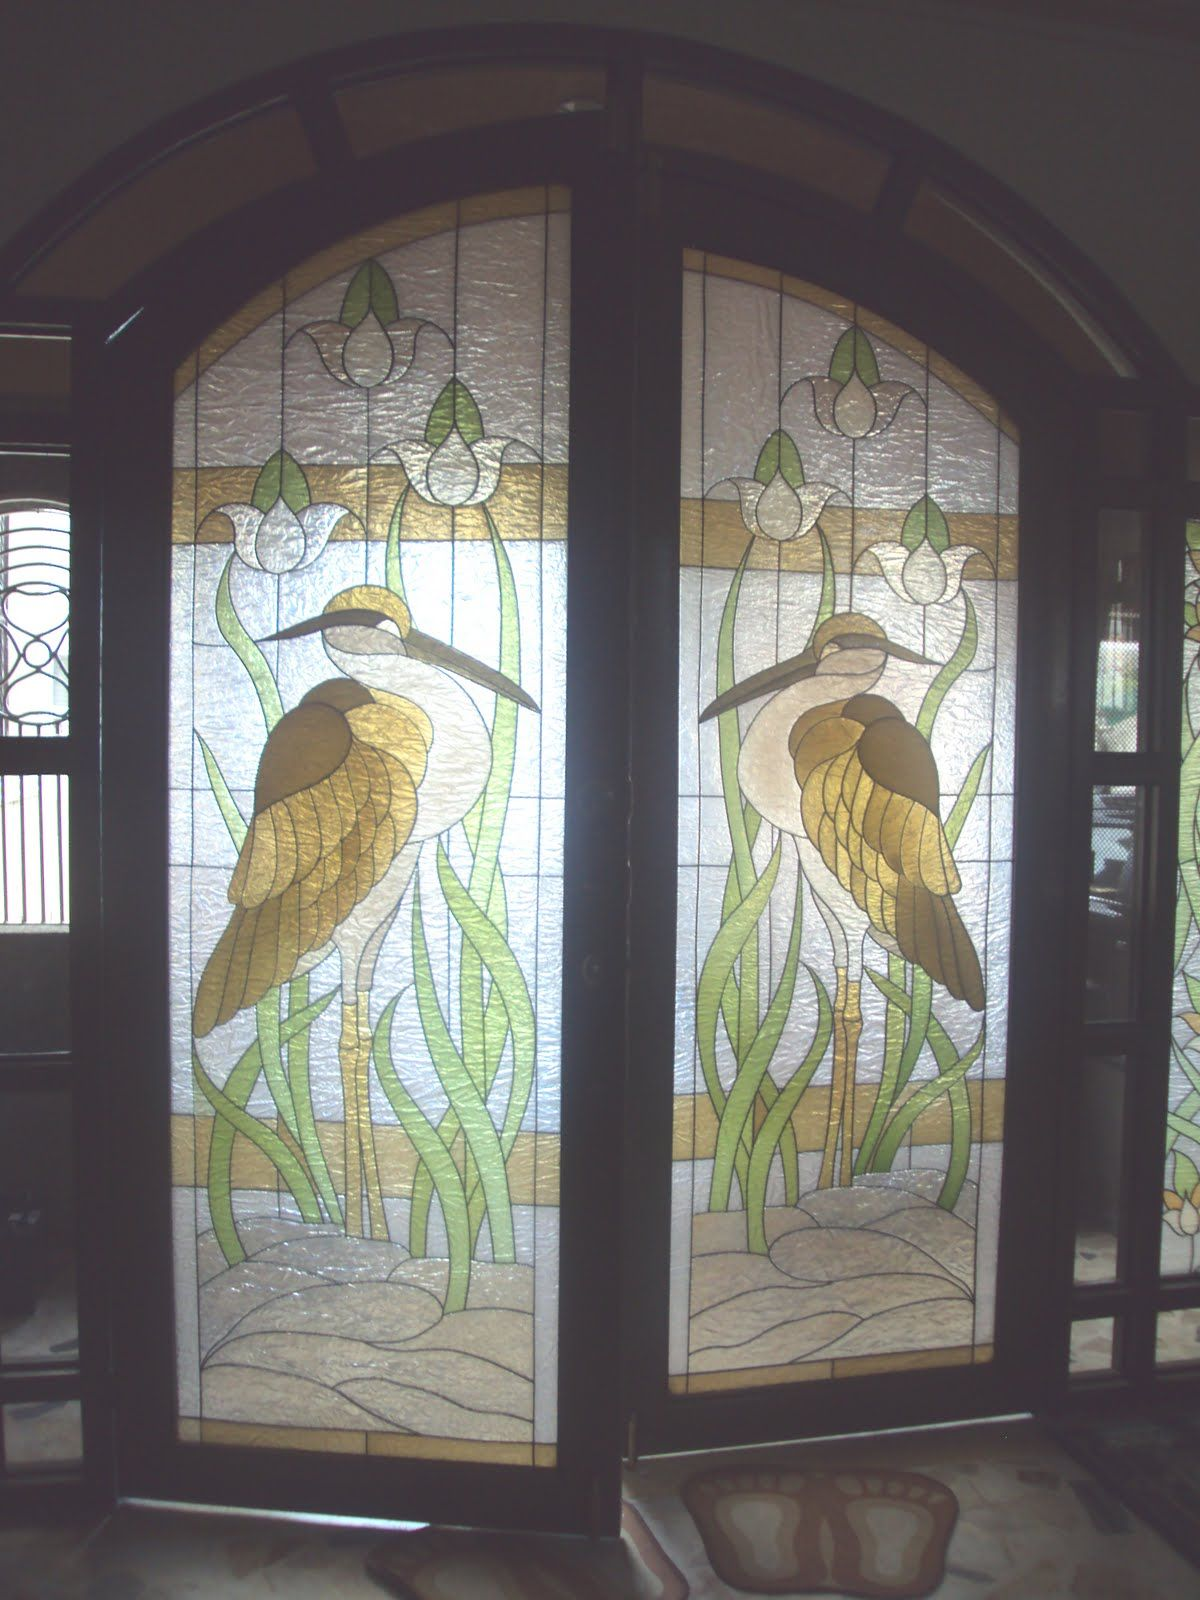 Etched glass doors privacy glass door inserts bamboo pictures to pin - Stained Glass Doors Glastek By Delmens Stained Glass Fiberglass Art Etched